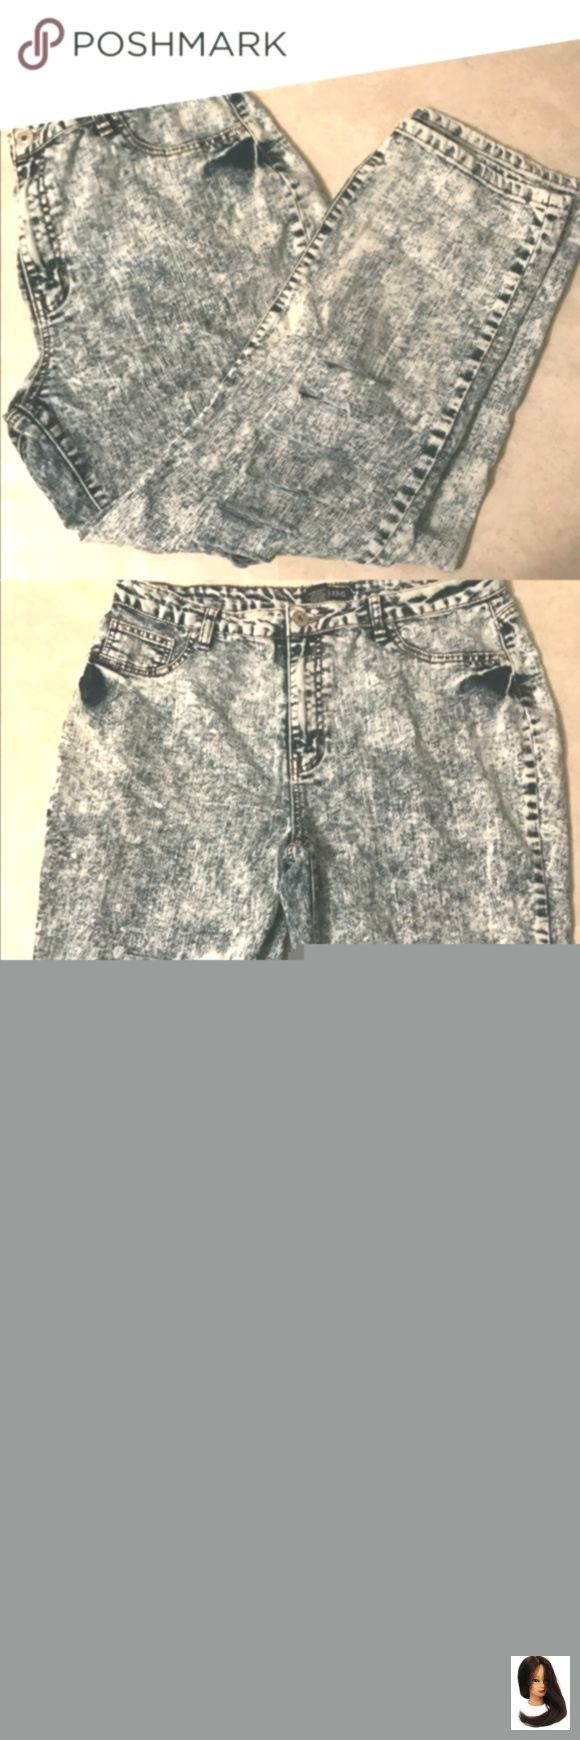 #Acid #Baddie #distressed #High #High Waist Jeans baddie #Jeans 2